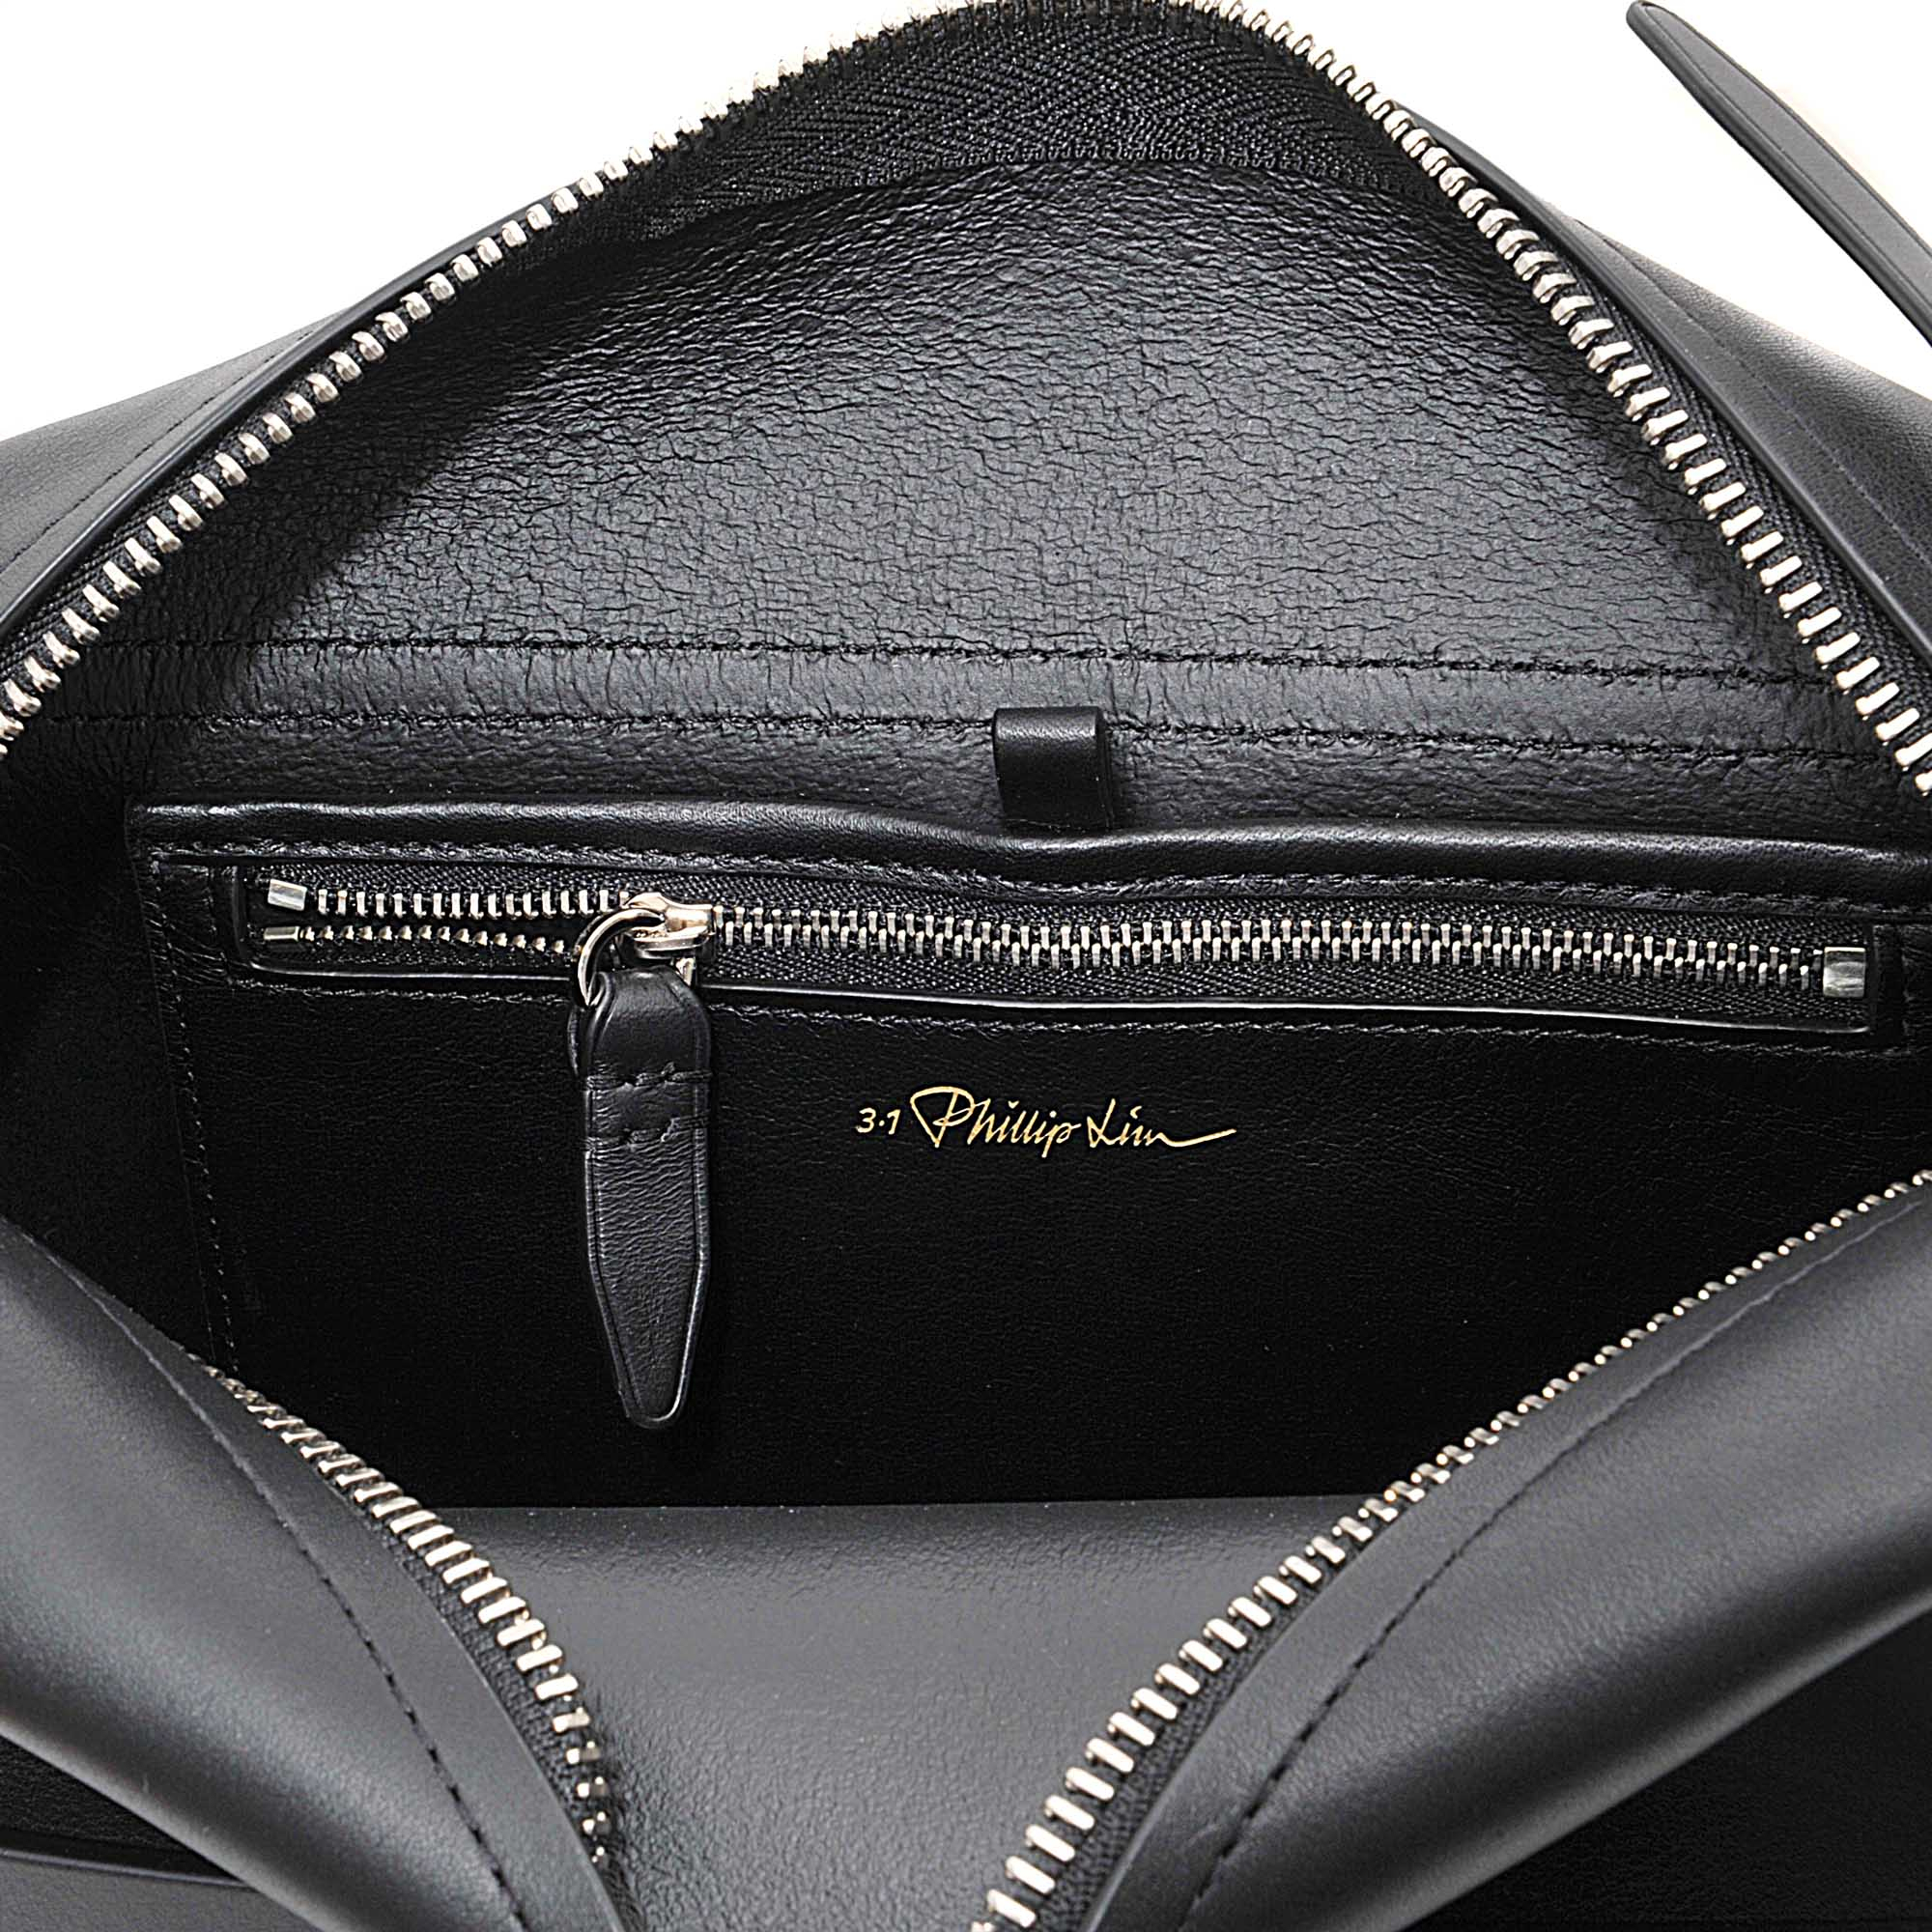 3.1 Phillip Lim Leather Medium Bianca Flap Crossbody Bag in Black